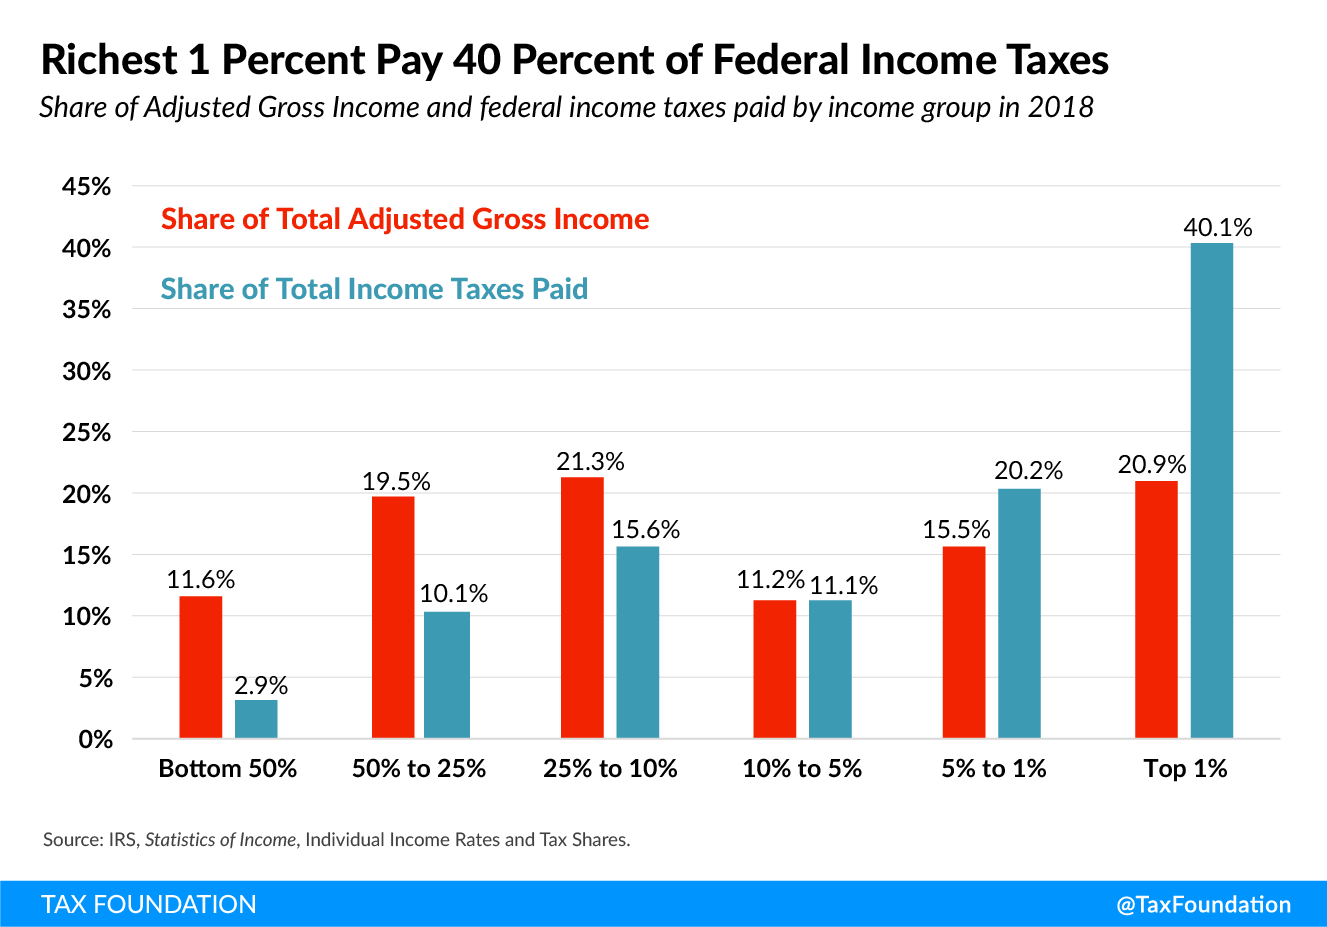 Richest 1 percent pay 40 percent of federal income taxes, US tax and fiscal system are redistributive, US tax redistribution Tax Fairness, Economic Growth, and Funding Government Investments (Fairer Tax System)